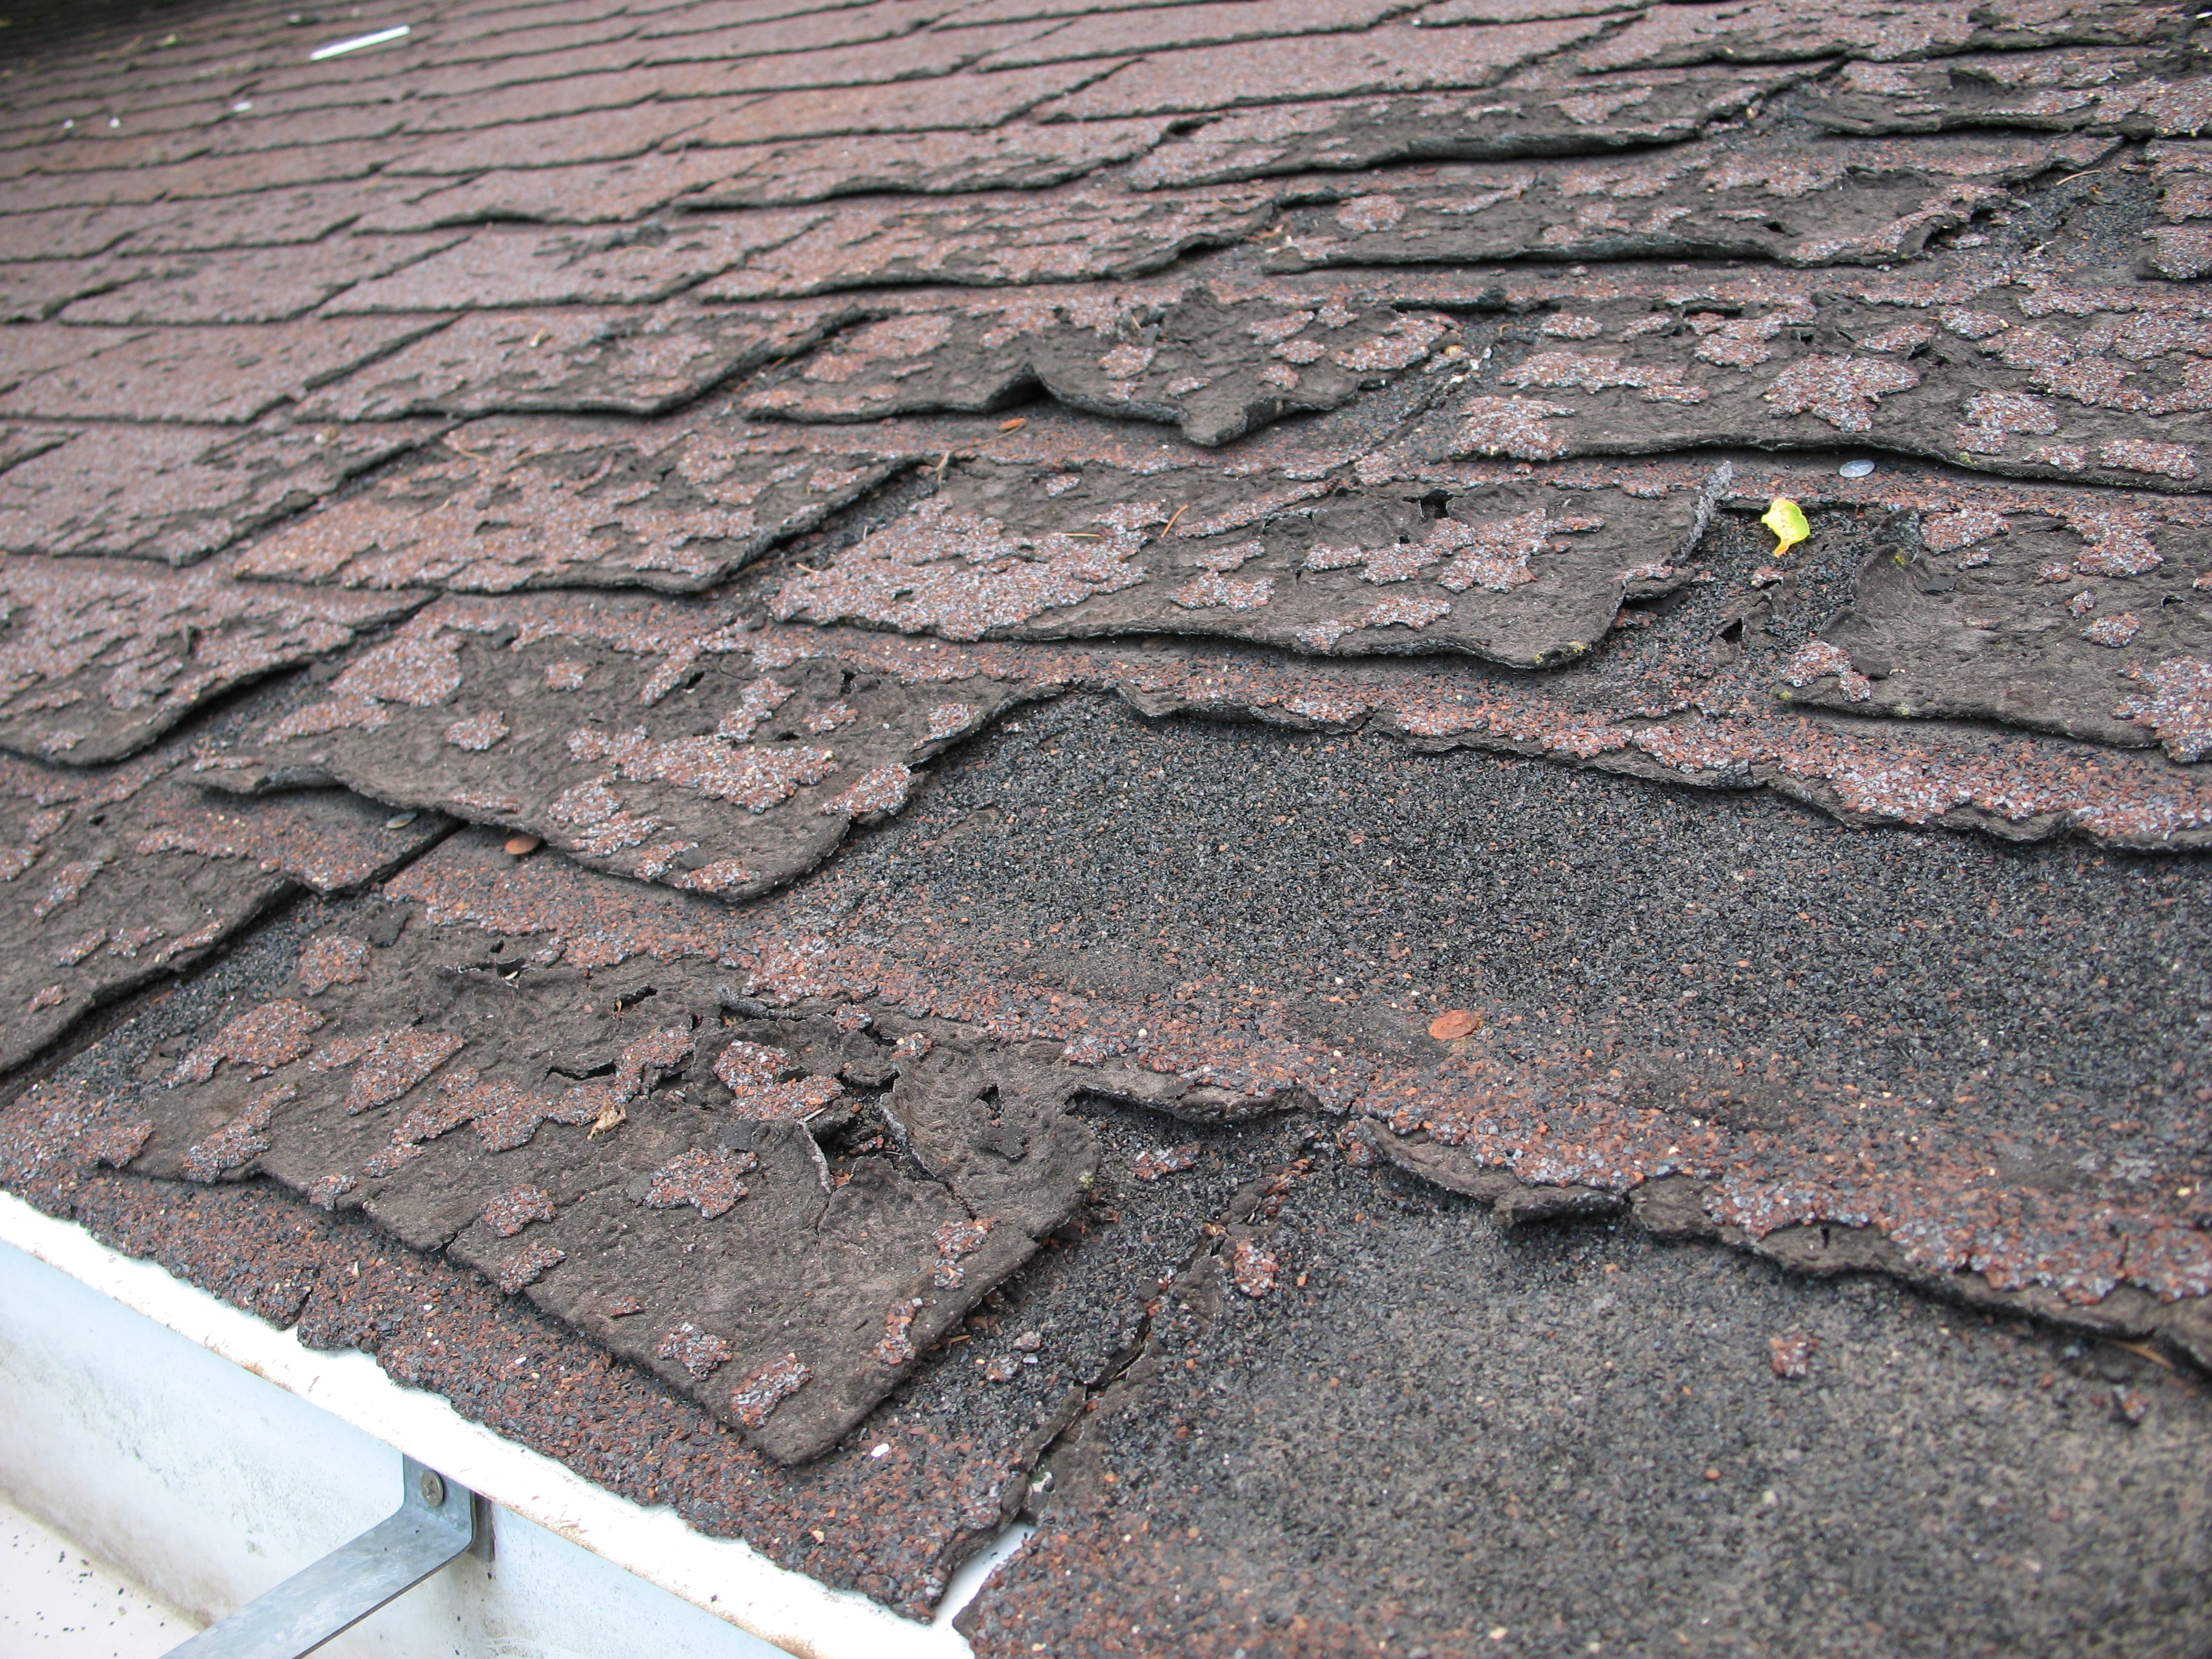 Failure of asphalt shingles allowing roof leakage; image by Dale Mahalko, CC BY-SA 3.0, via wikimedia.org, no changes.